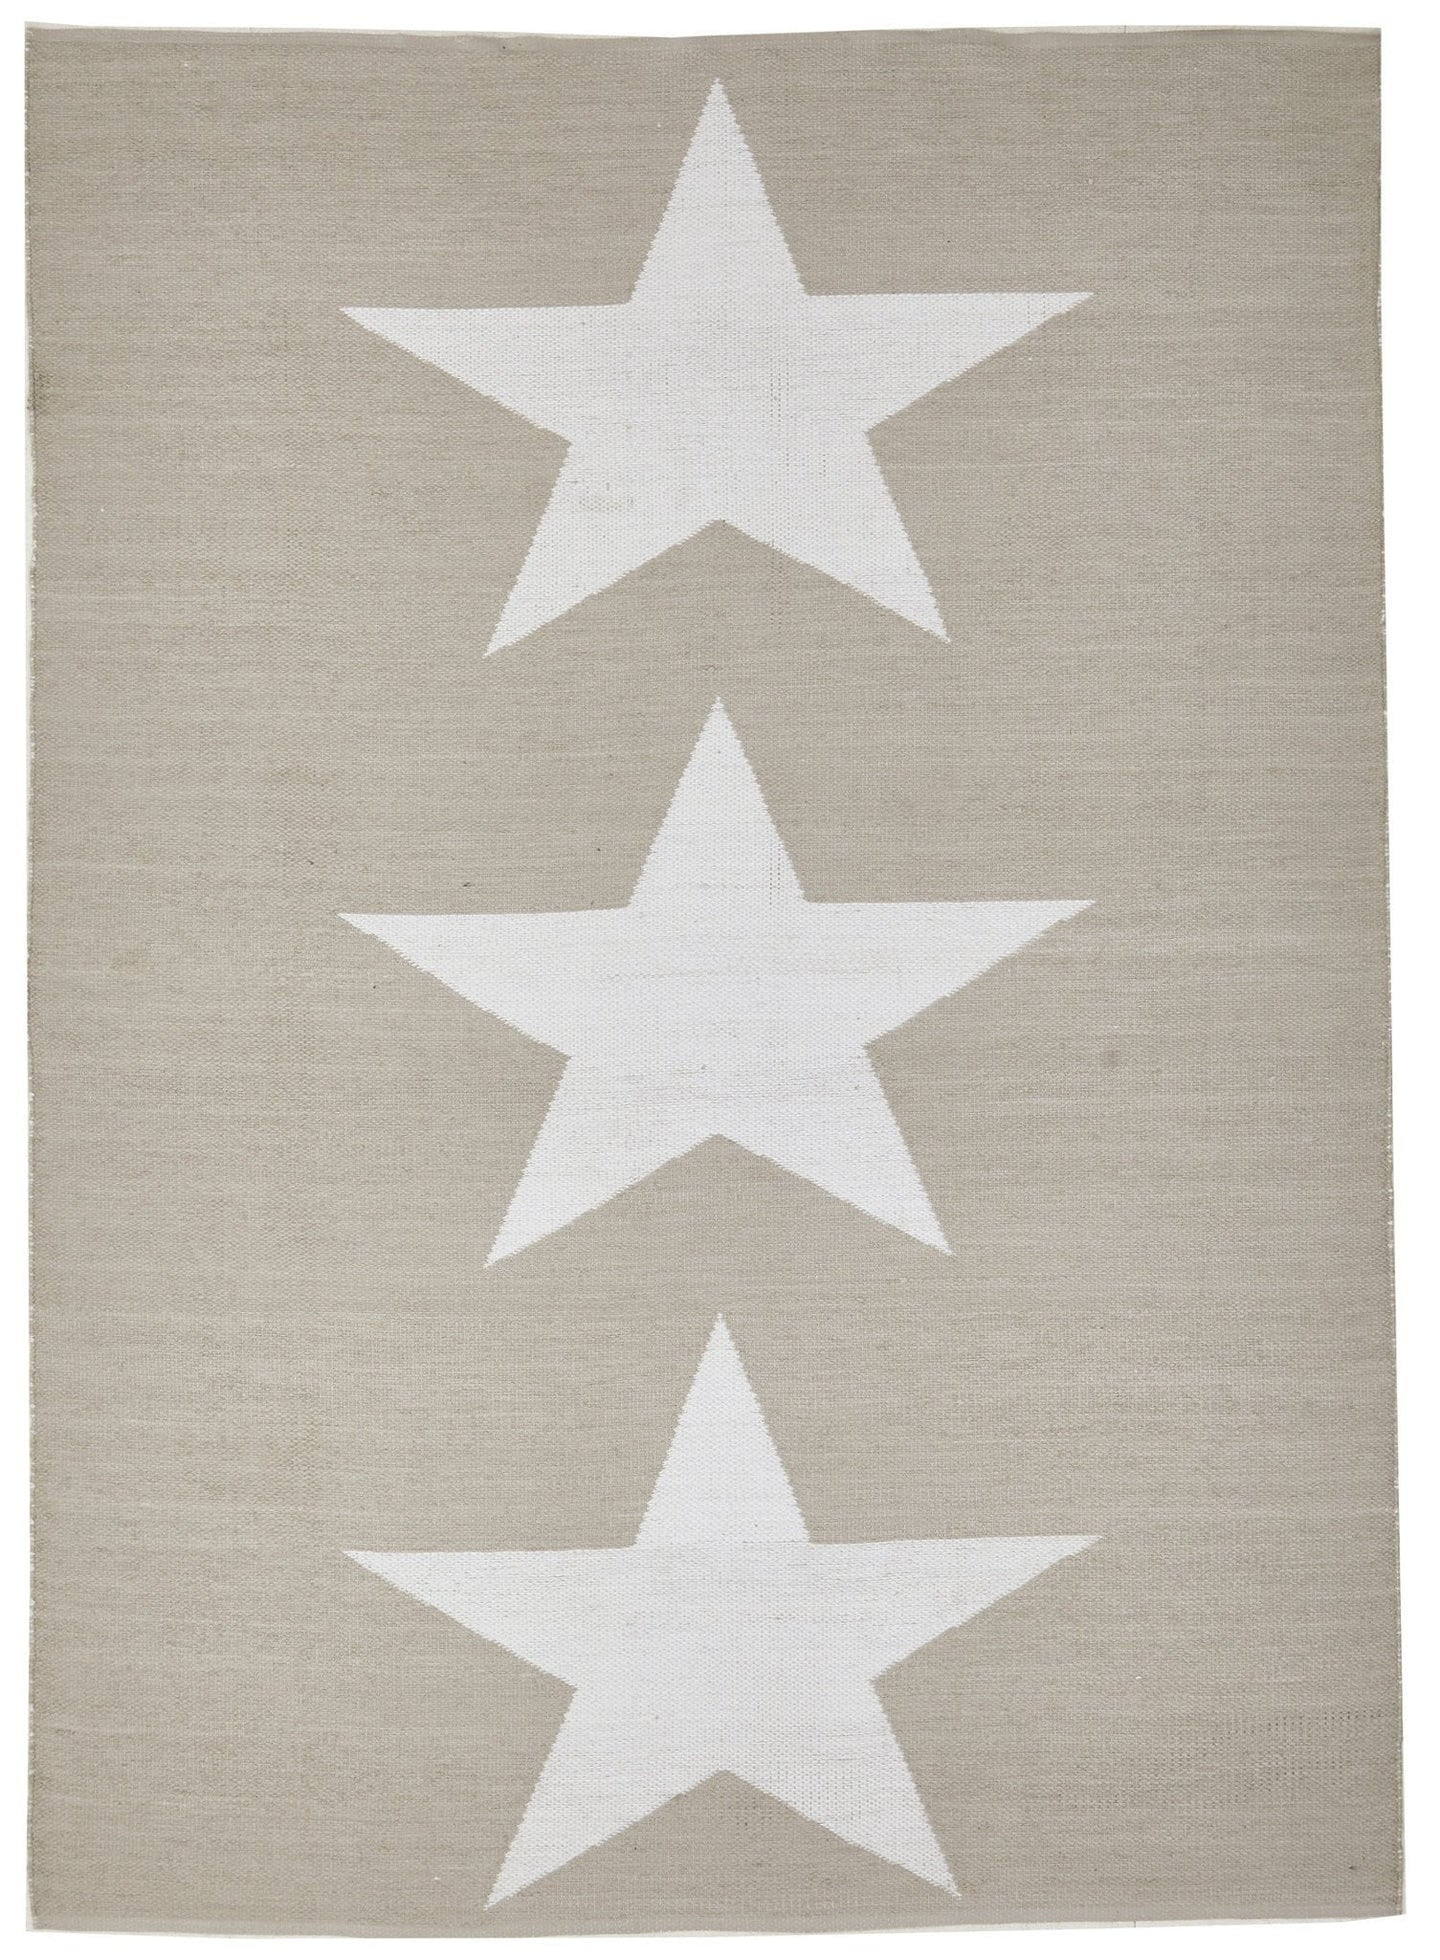 Coastal Indoor Out door Rug Star Taupe White